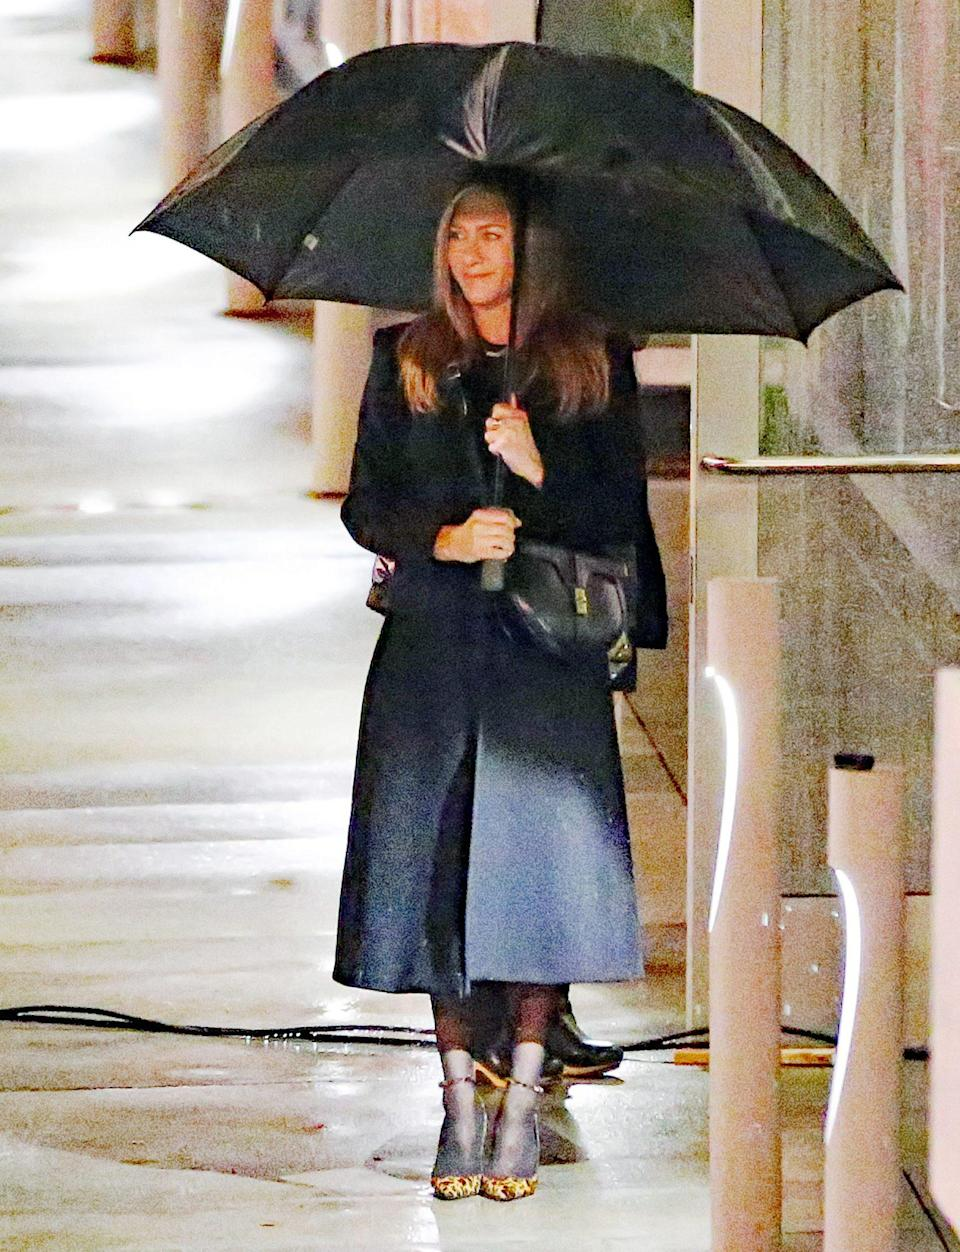 <p>Jennifer Aniston shoots scenes for <em>The Morning Show</em> on a rare rainy Thursday in L.A.</p>